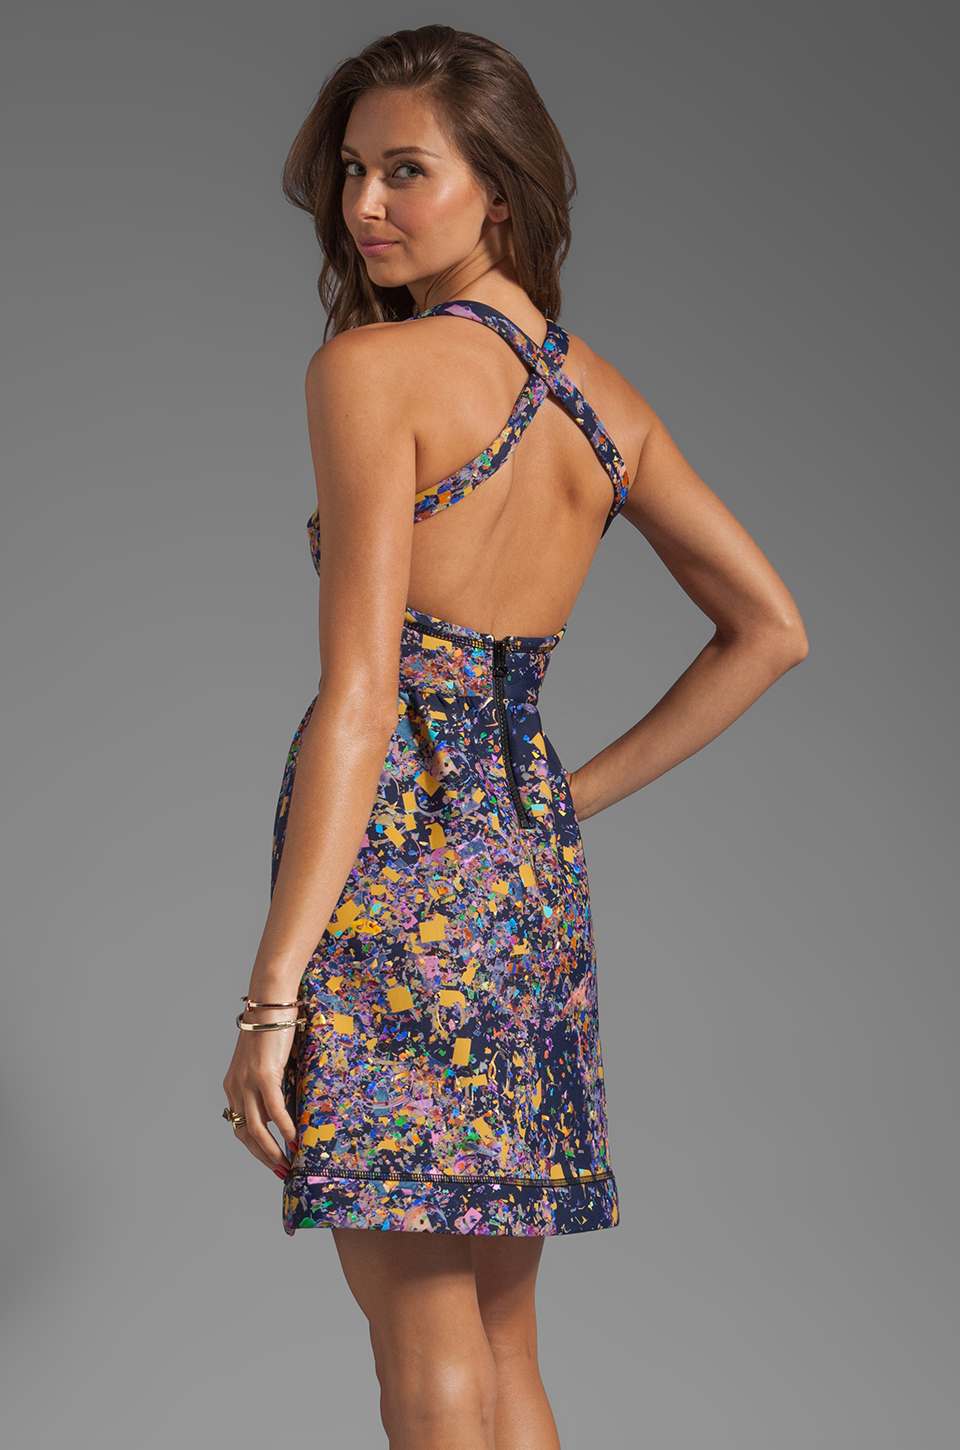 Cynthia Rowley Bonded Party Dress in Navy Confetti